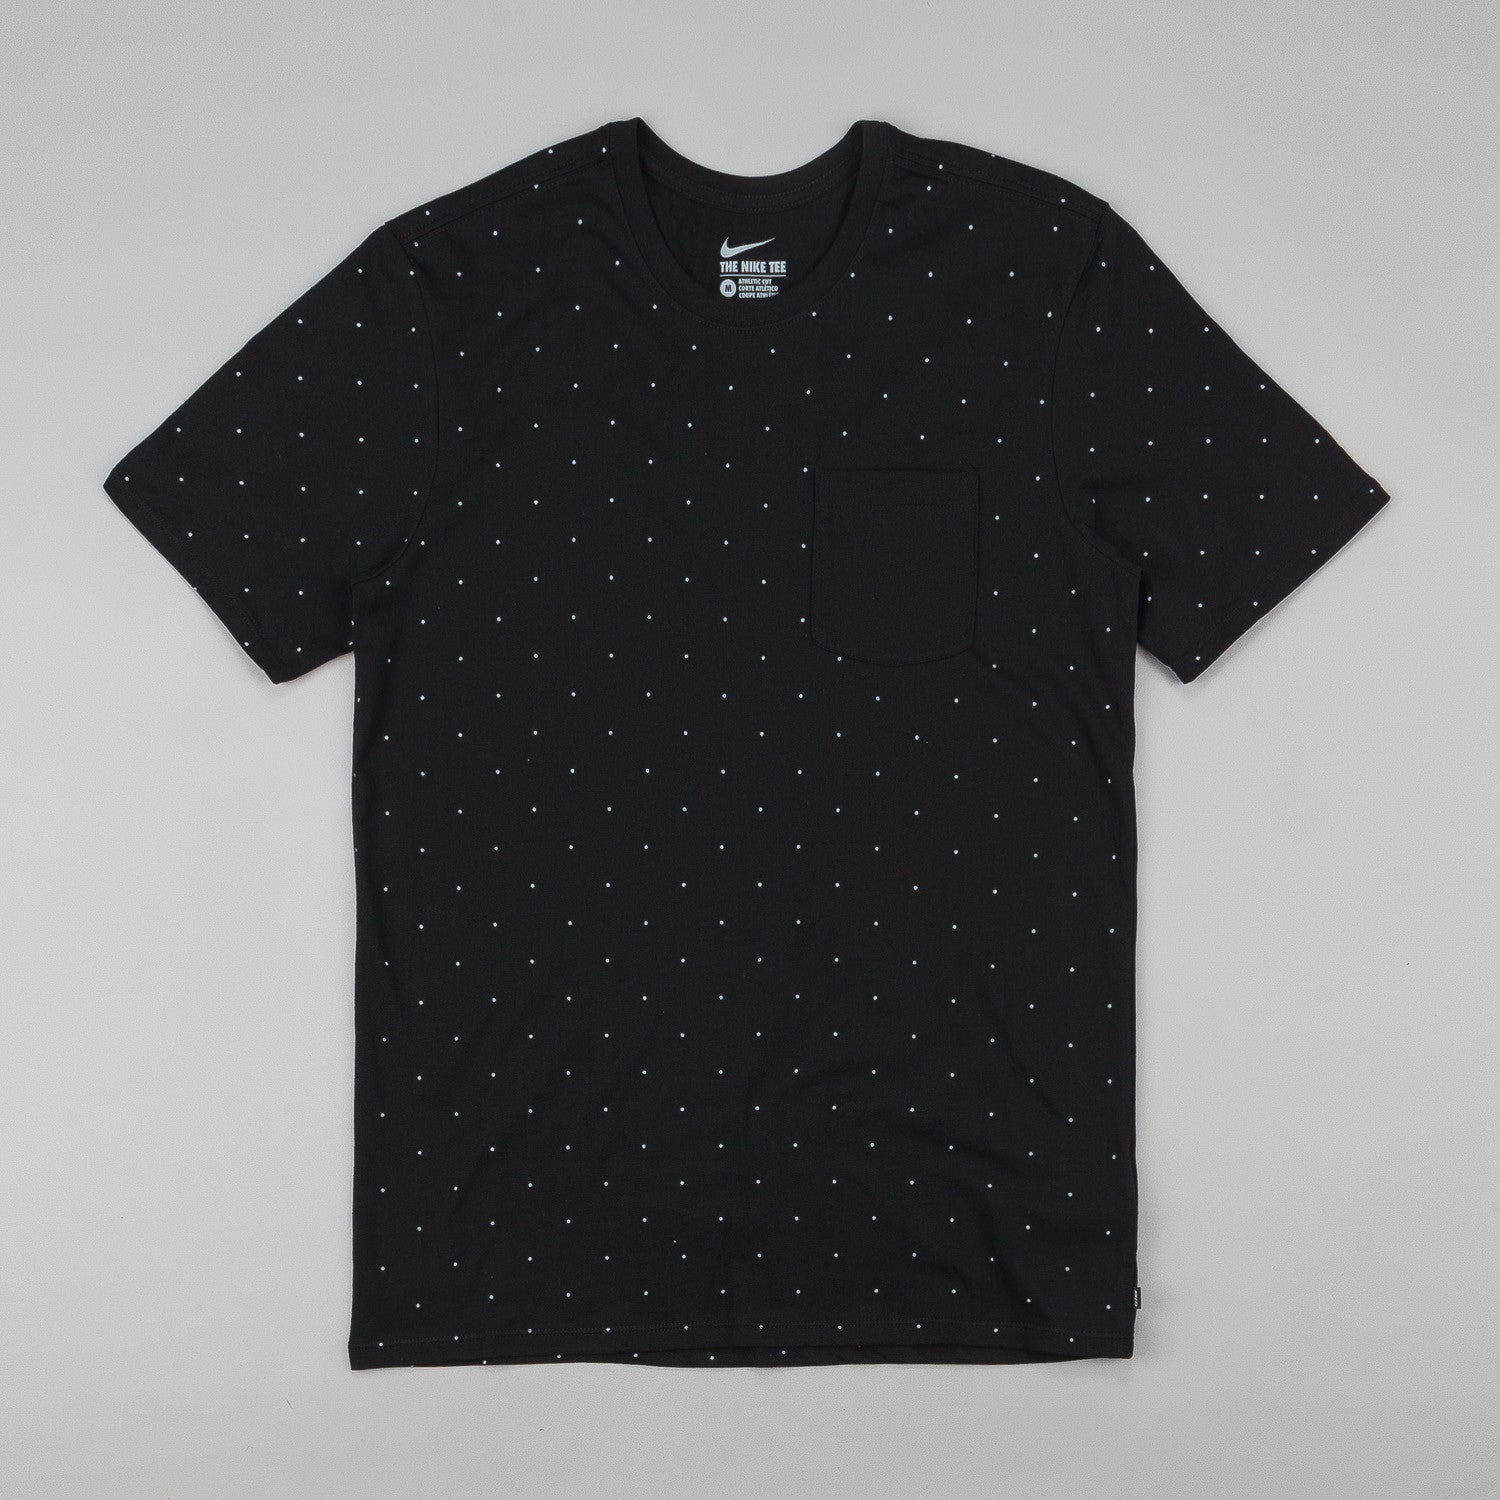 Nike SB AOP Micro Dot Short Sleeve T-Shirt